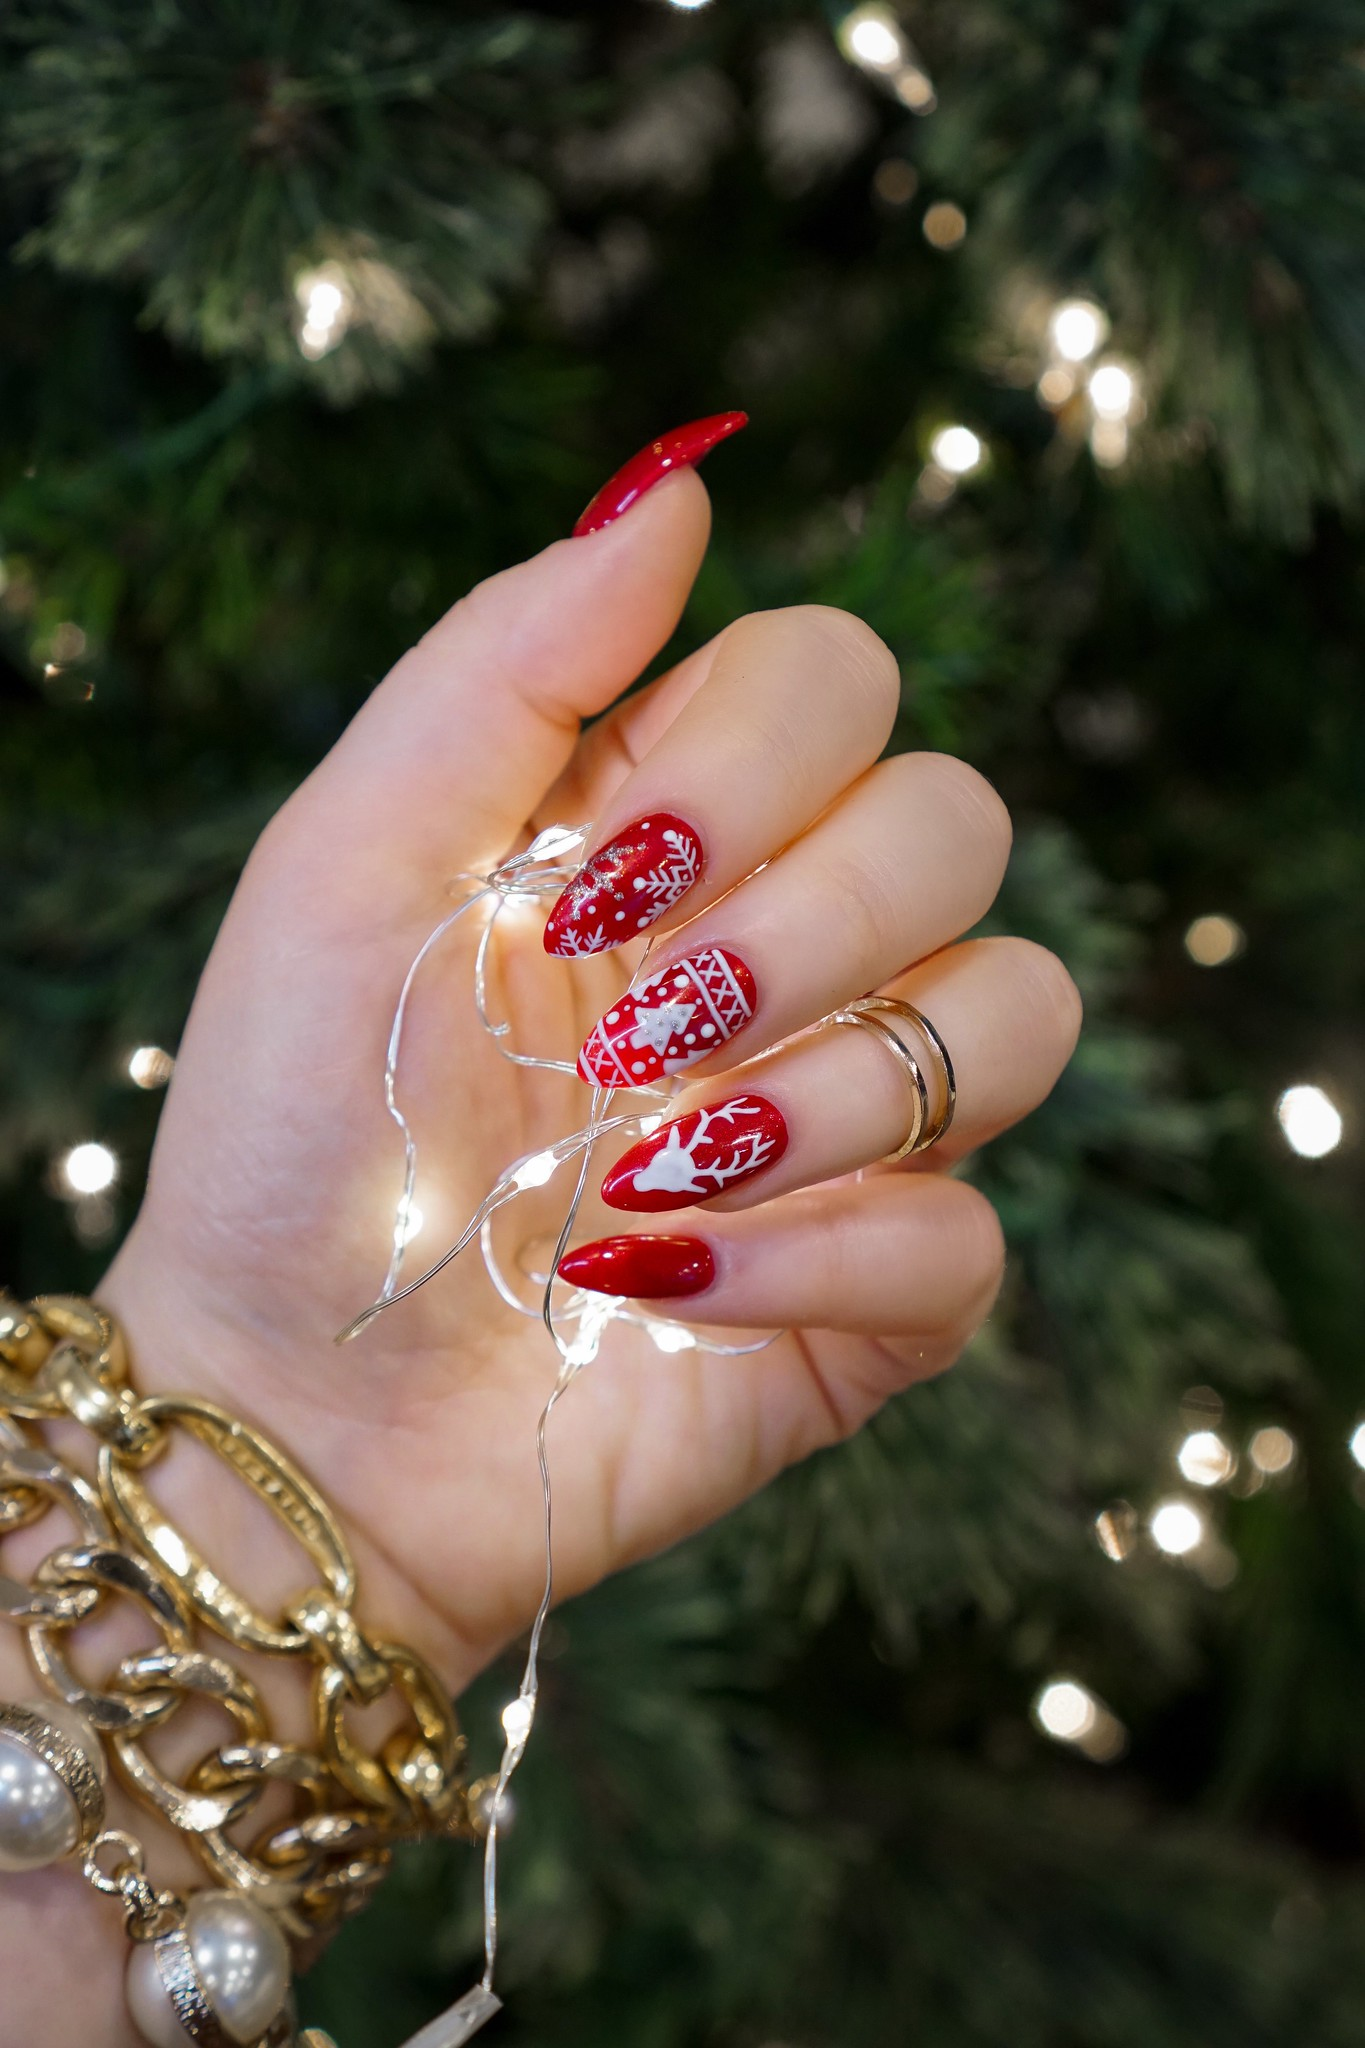 Red Christmas Sweater Nails | Holiday Manicures | Holiday Nails | Cutest Christmas Sweater Nails | Snowflake Nails | Reindeer Nail Art | Christmas Nail Ideas | December Nails | Christmas Lights